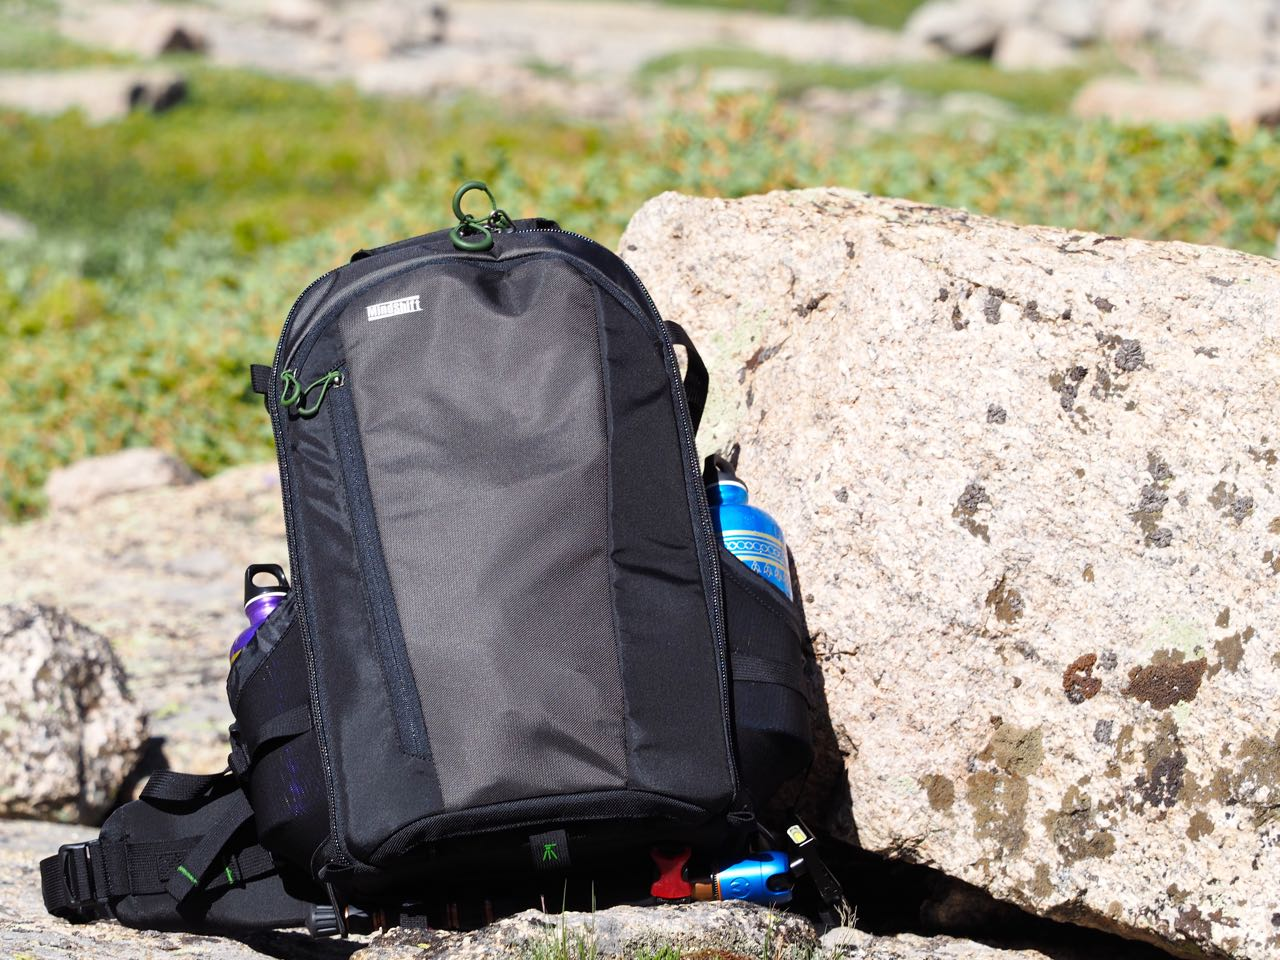 If You Are Looking For A Pack To Carry Your Gear For Miles In The  Backcountry And Also Able To Use It To Carry Your Gear And Laptop/tablet  While Traveling ... Awesome Design